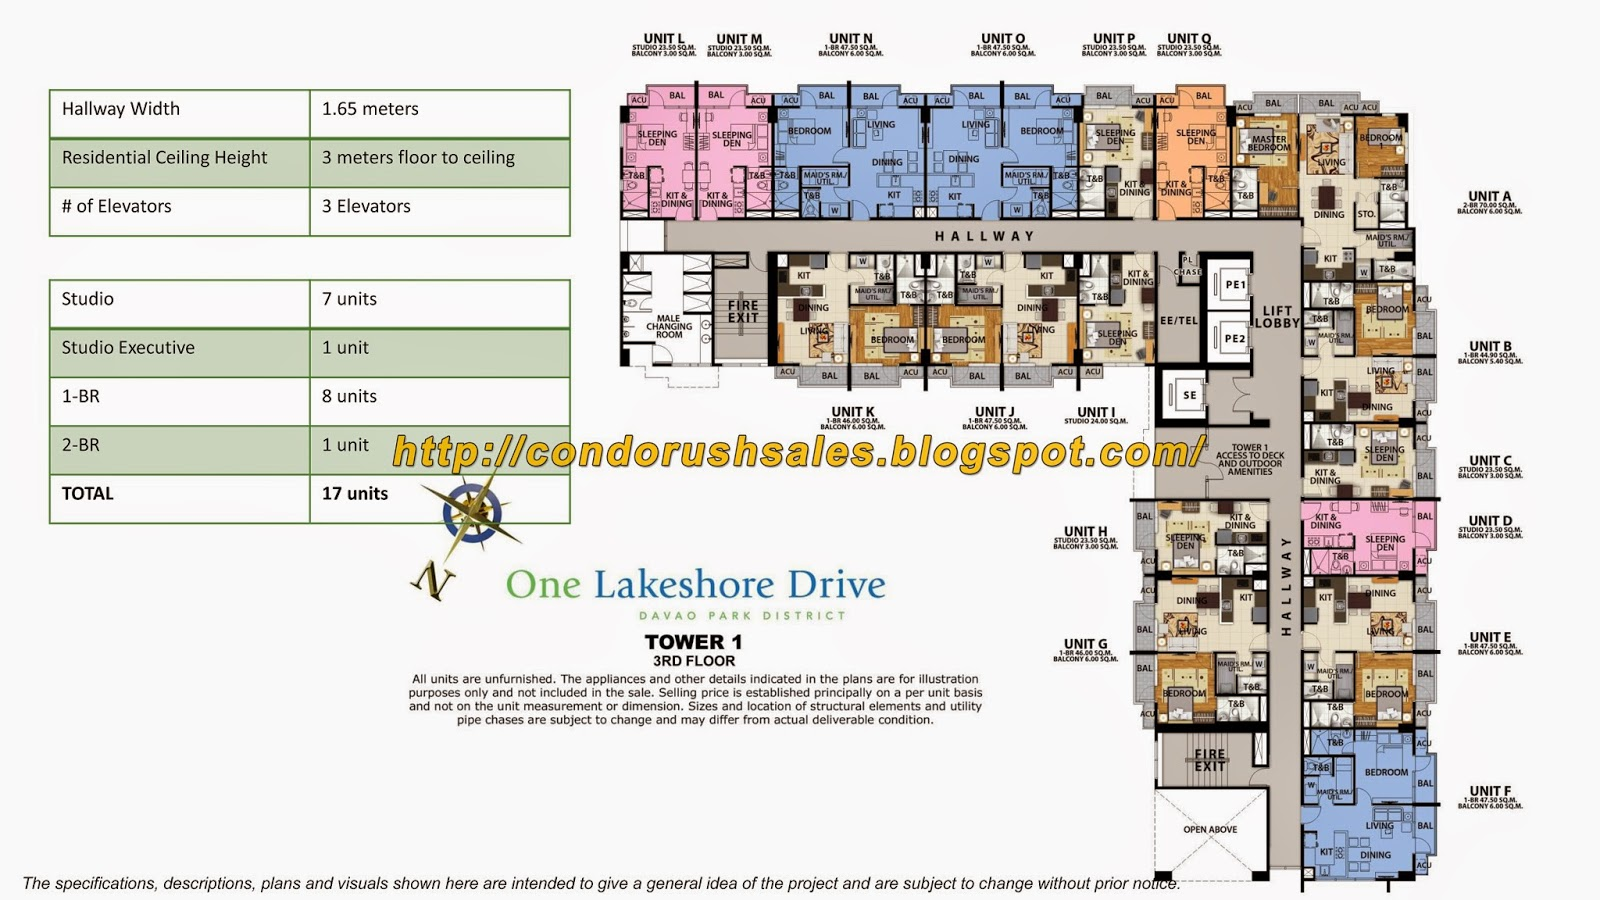 One Lakeshore Drive 3rd Floor Units